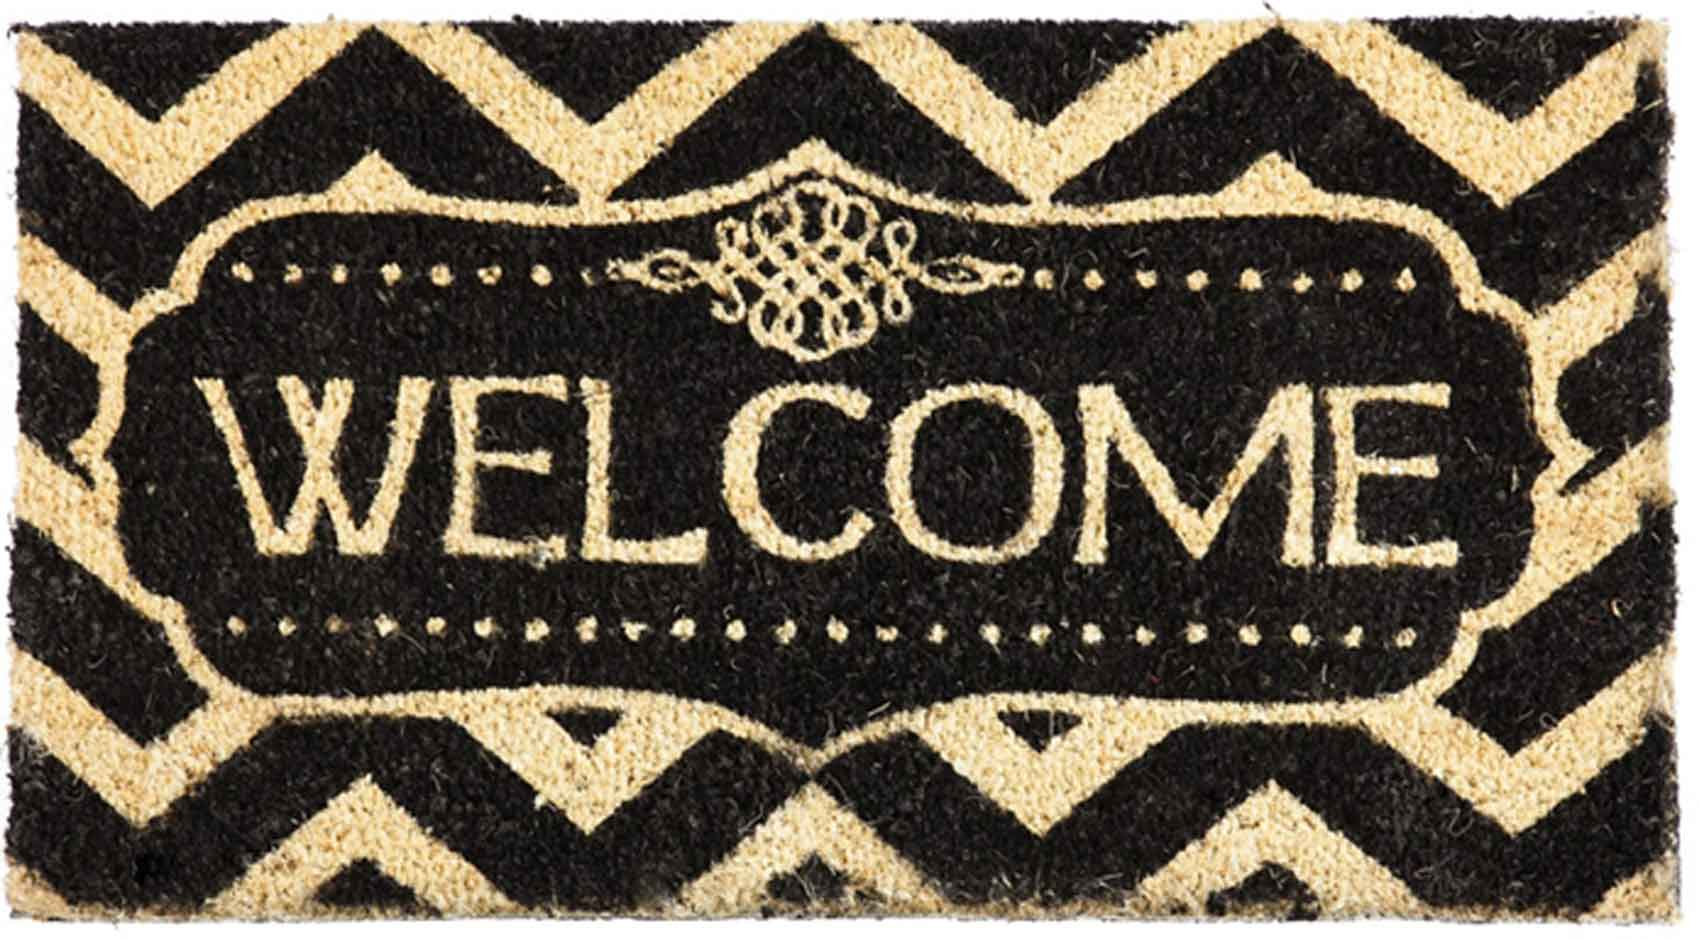 coco coir decorative welcome backed doormat 16 x 28